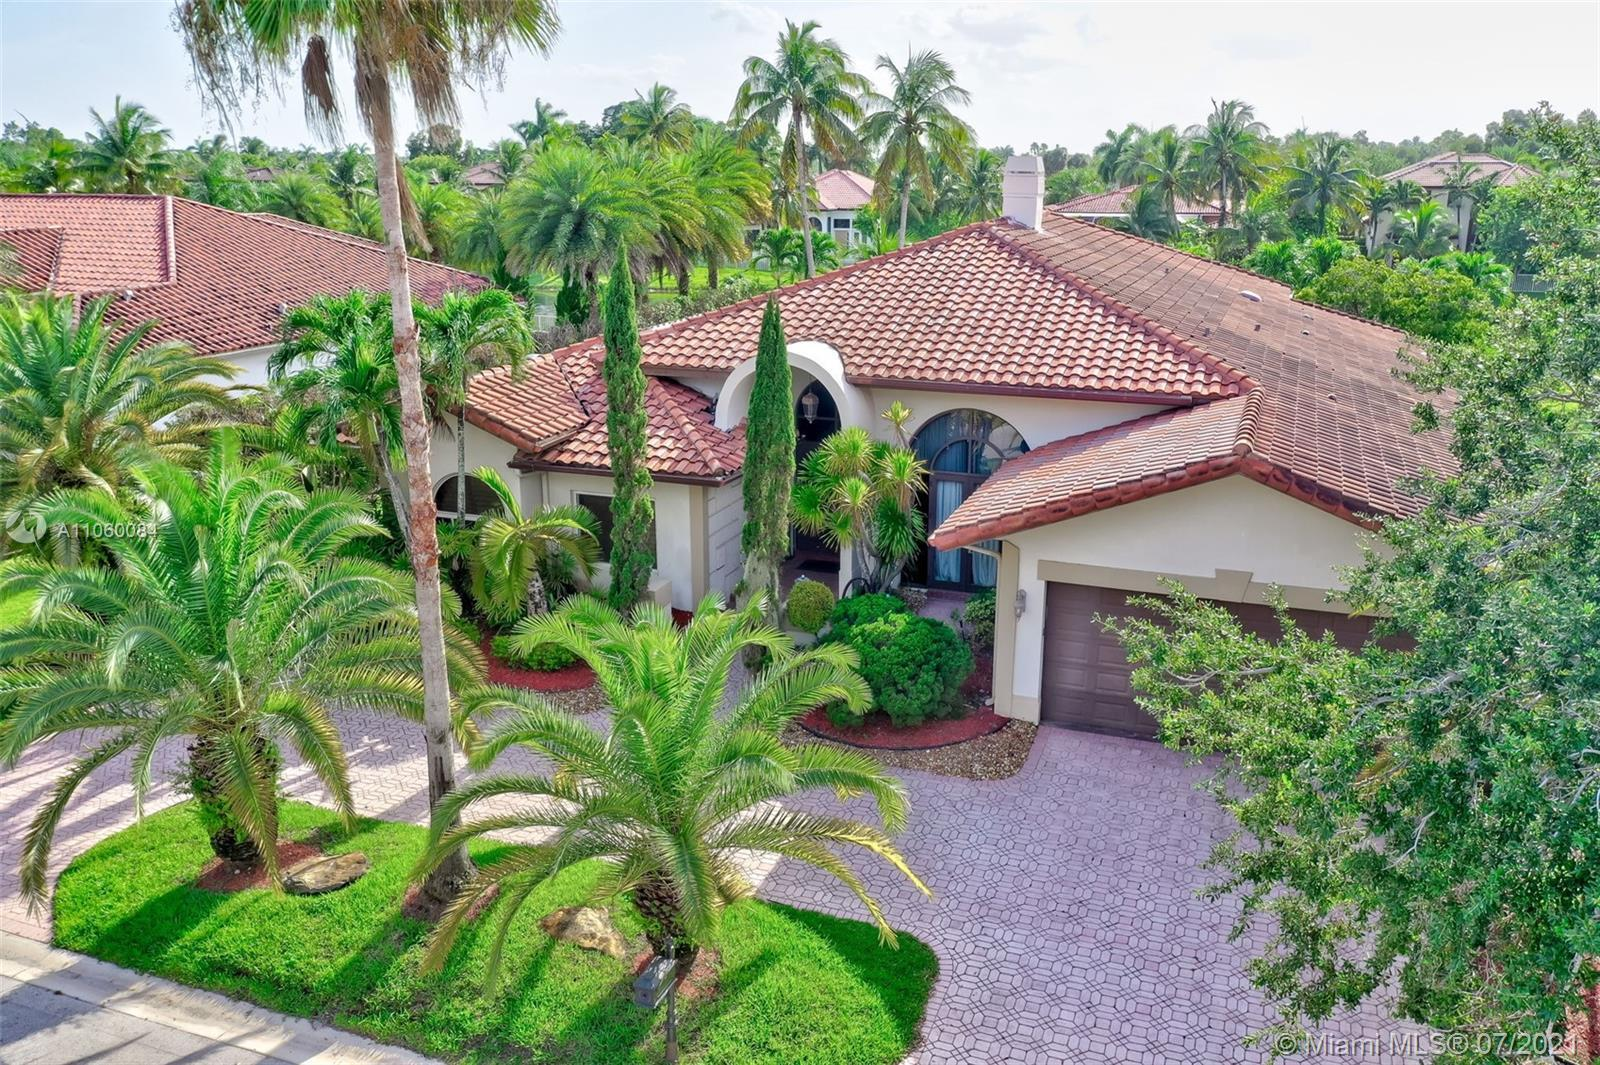 Beautiful home with impressive soaring high vaulted ceilings. This beautiful home sits on a waterfro